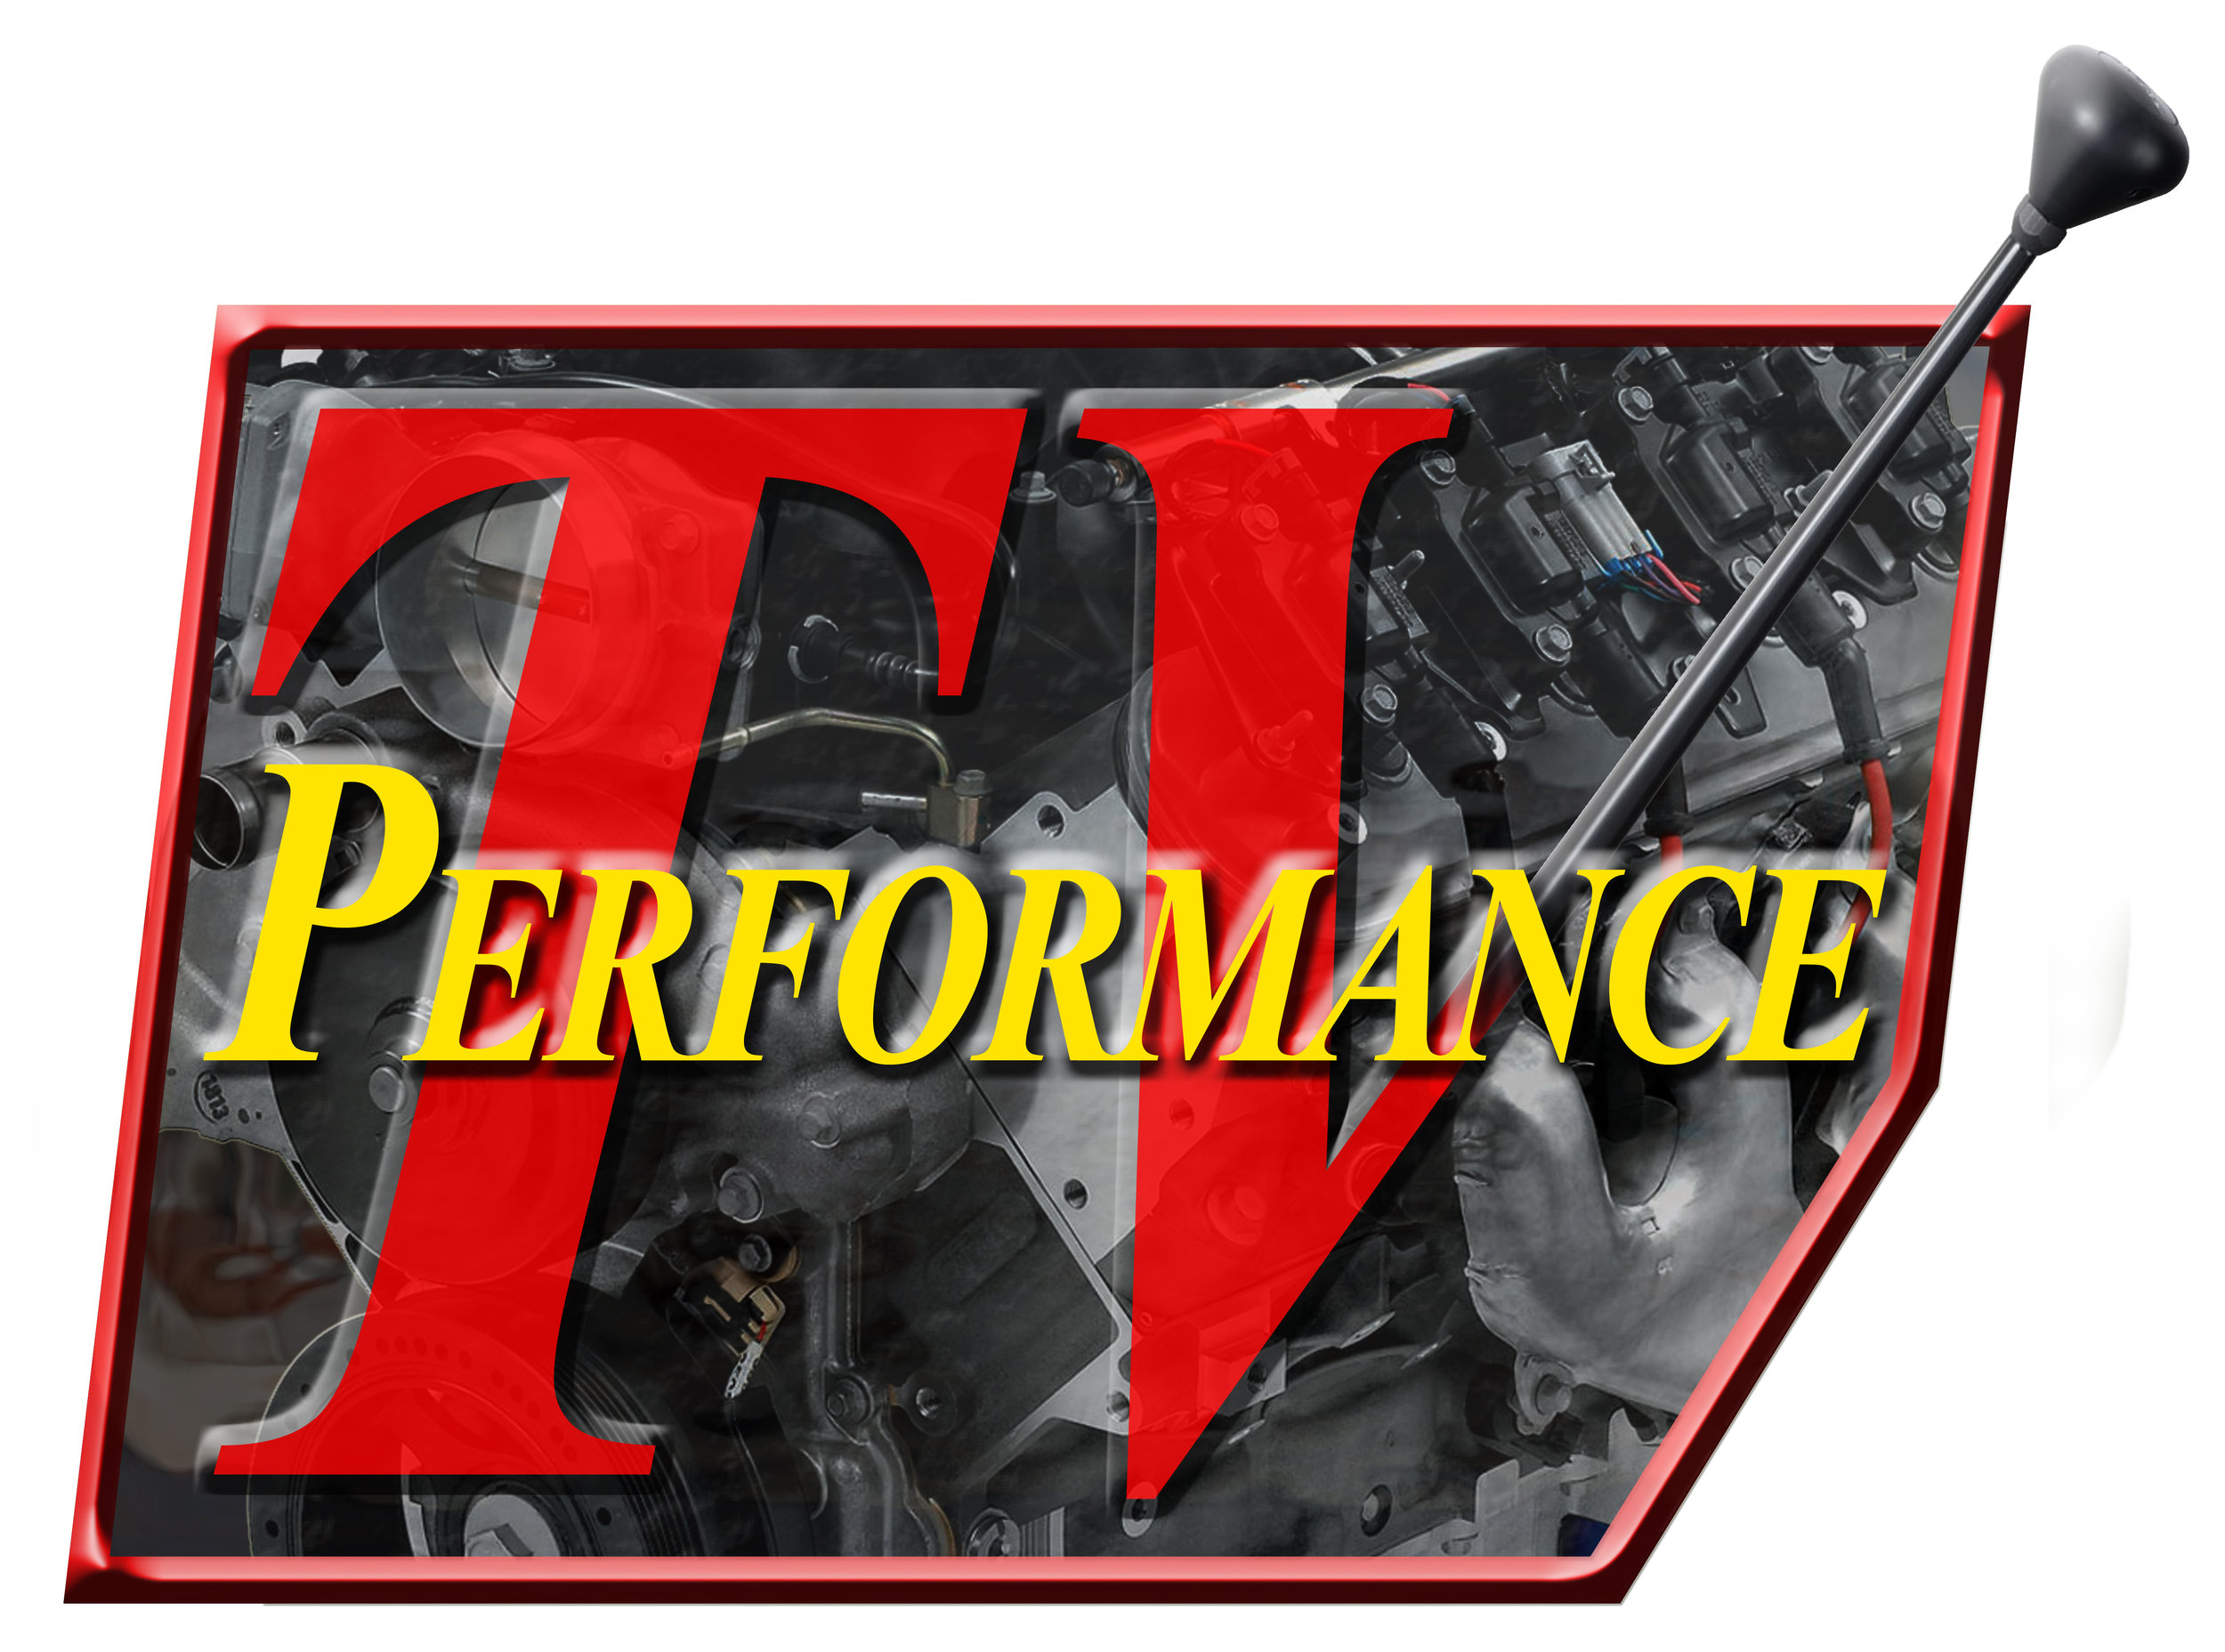 performance tv logo.jpg